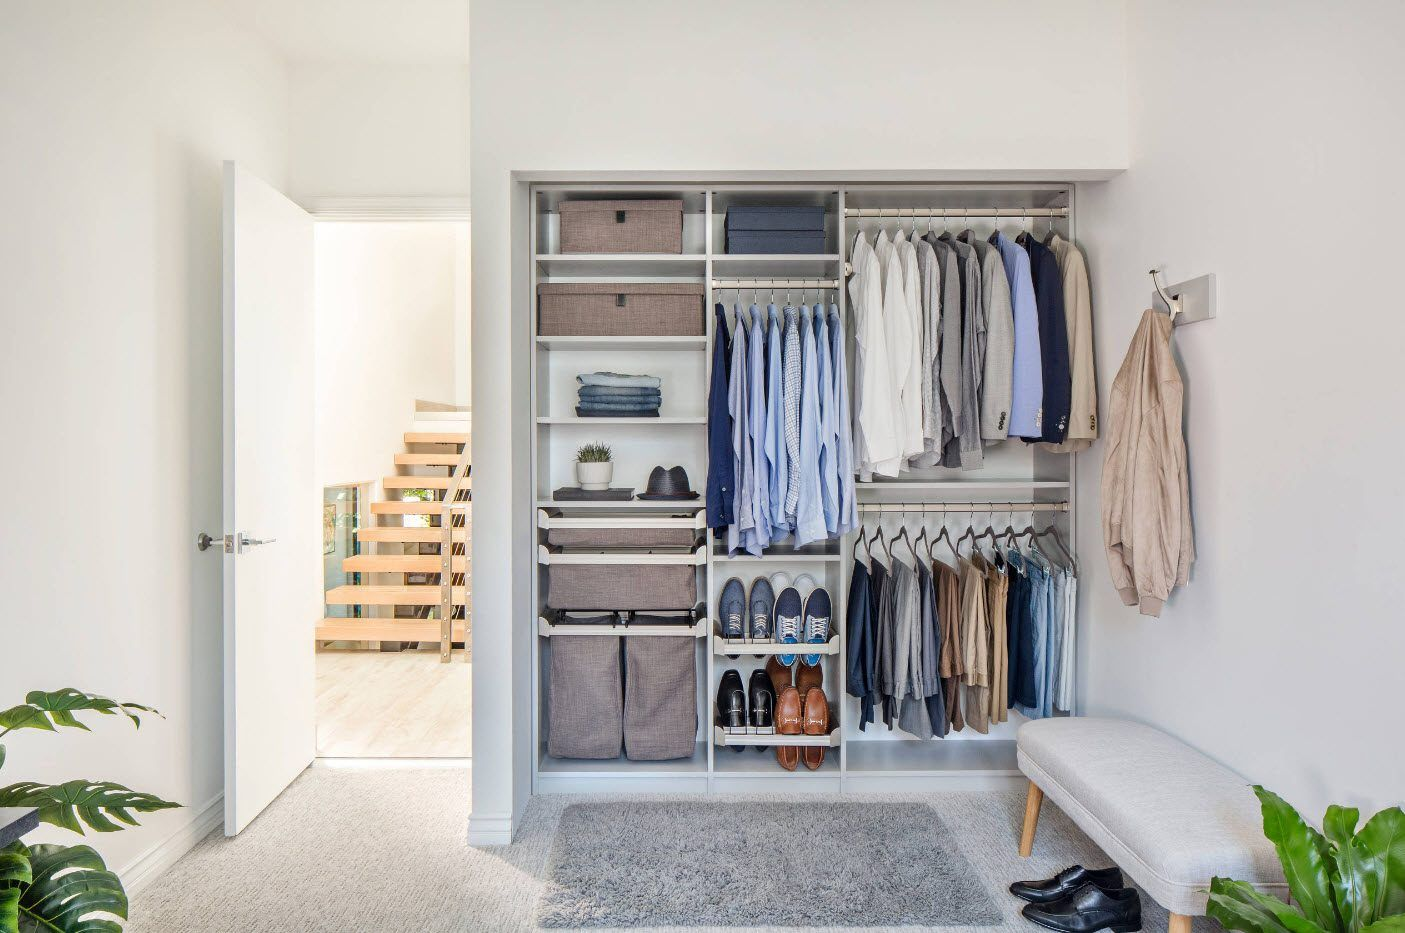 Full-fledged bedroom wardrobe in the modern styled private house